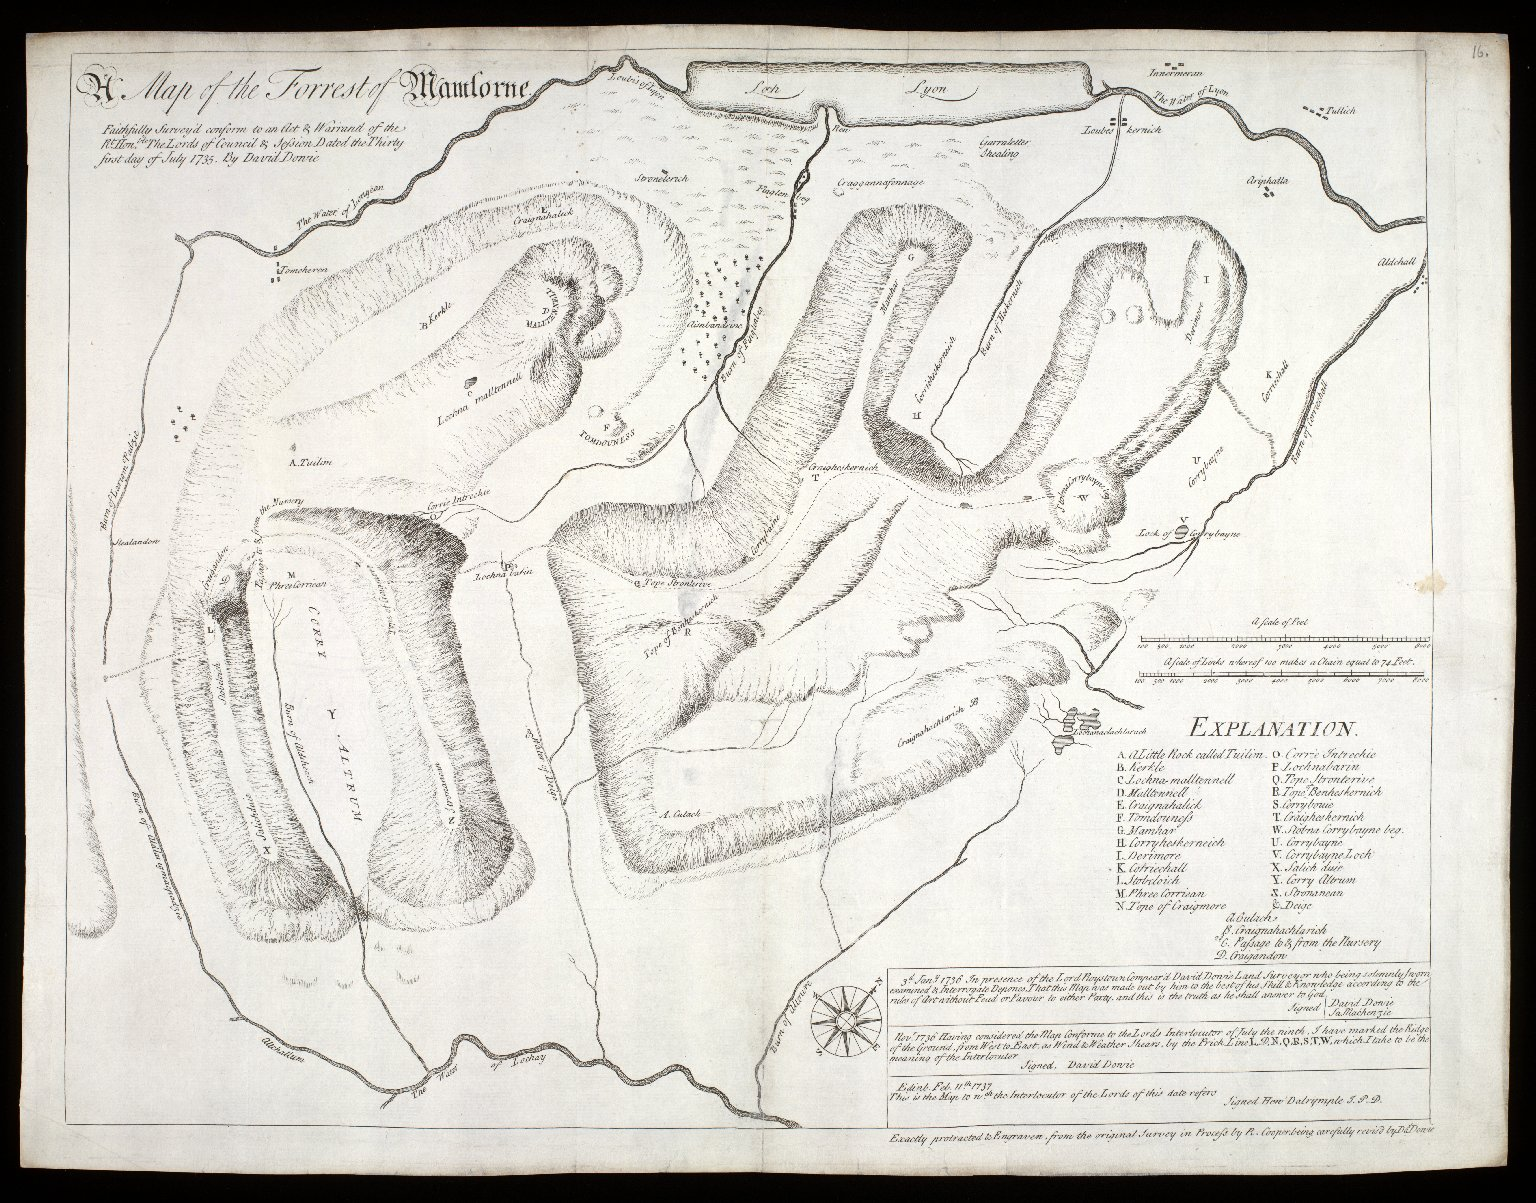 A map of the Forrest Mamlorne [1 of 1]